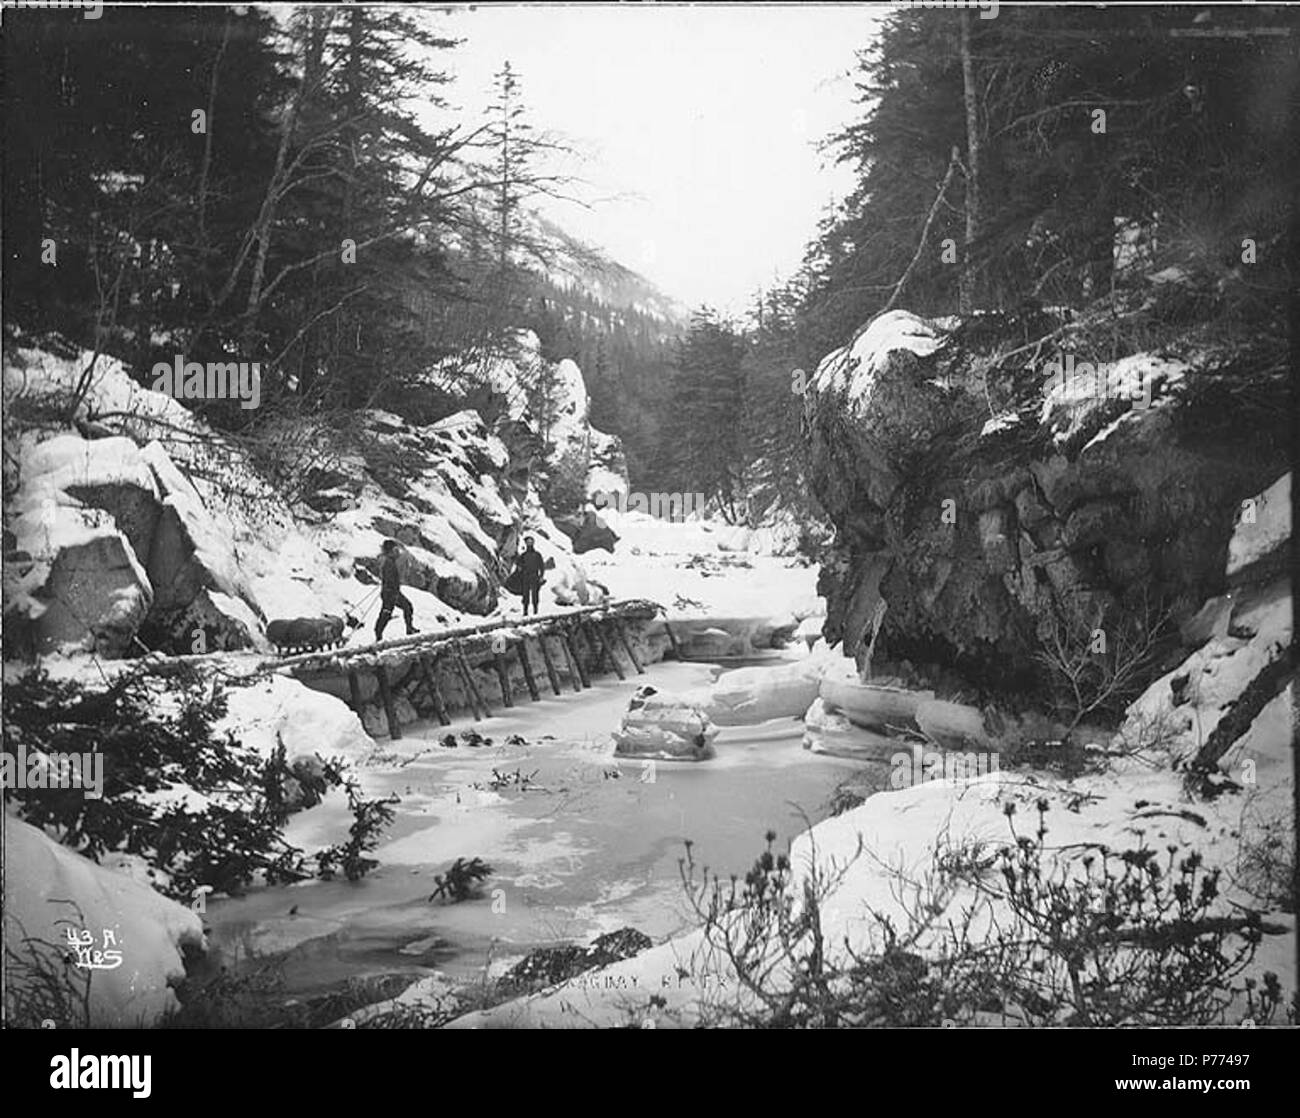 . English: Man and partner hauling sled, White Pass Trail, Skagway River, Alaska, ca. 1898. English: Caption on image: 'Winter trail on Skaguay River' Original image in Hegg Album 8, page 25 . Original photograph by Eric A. Hegg 129; copied by Webster and Stevens 43.A . Klondike Gold Rush Subjects (LCTGM): Rivers--Alaska; Sleds & sleighs--Alaska; Bridges--Alaska Subjects (LCSH): White Pass Trail; Trails--Alaska; Skagway River (Alaska)  . circa 1898 8 Man and partner hauling sled, White Pass Trail, Skagway River, Alaska, ca 1898 (HEGG 234) - Stock Image